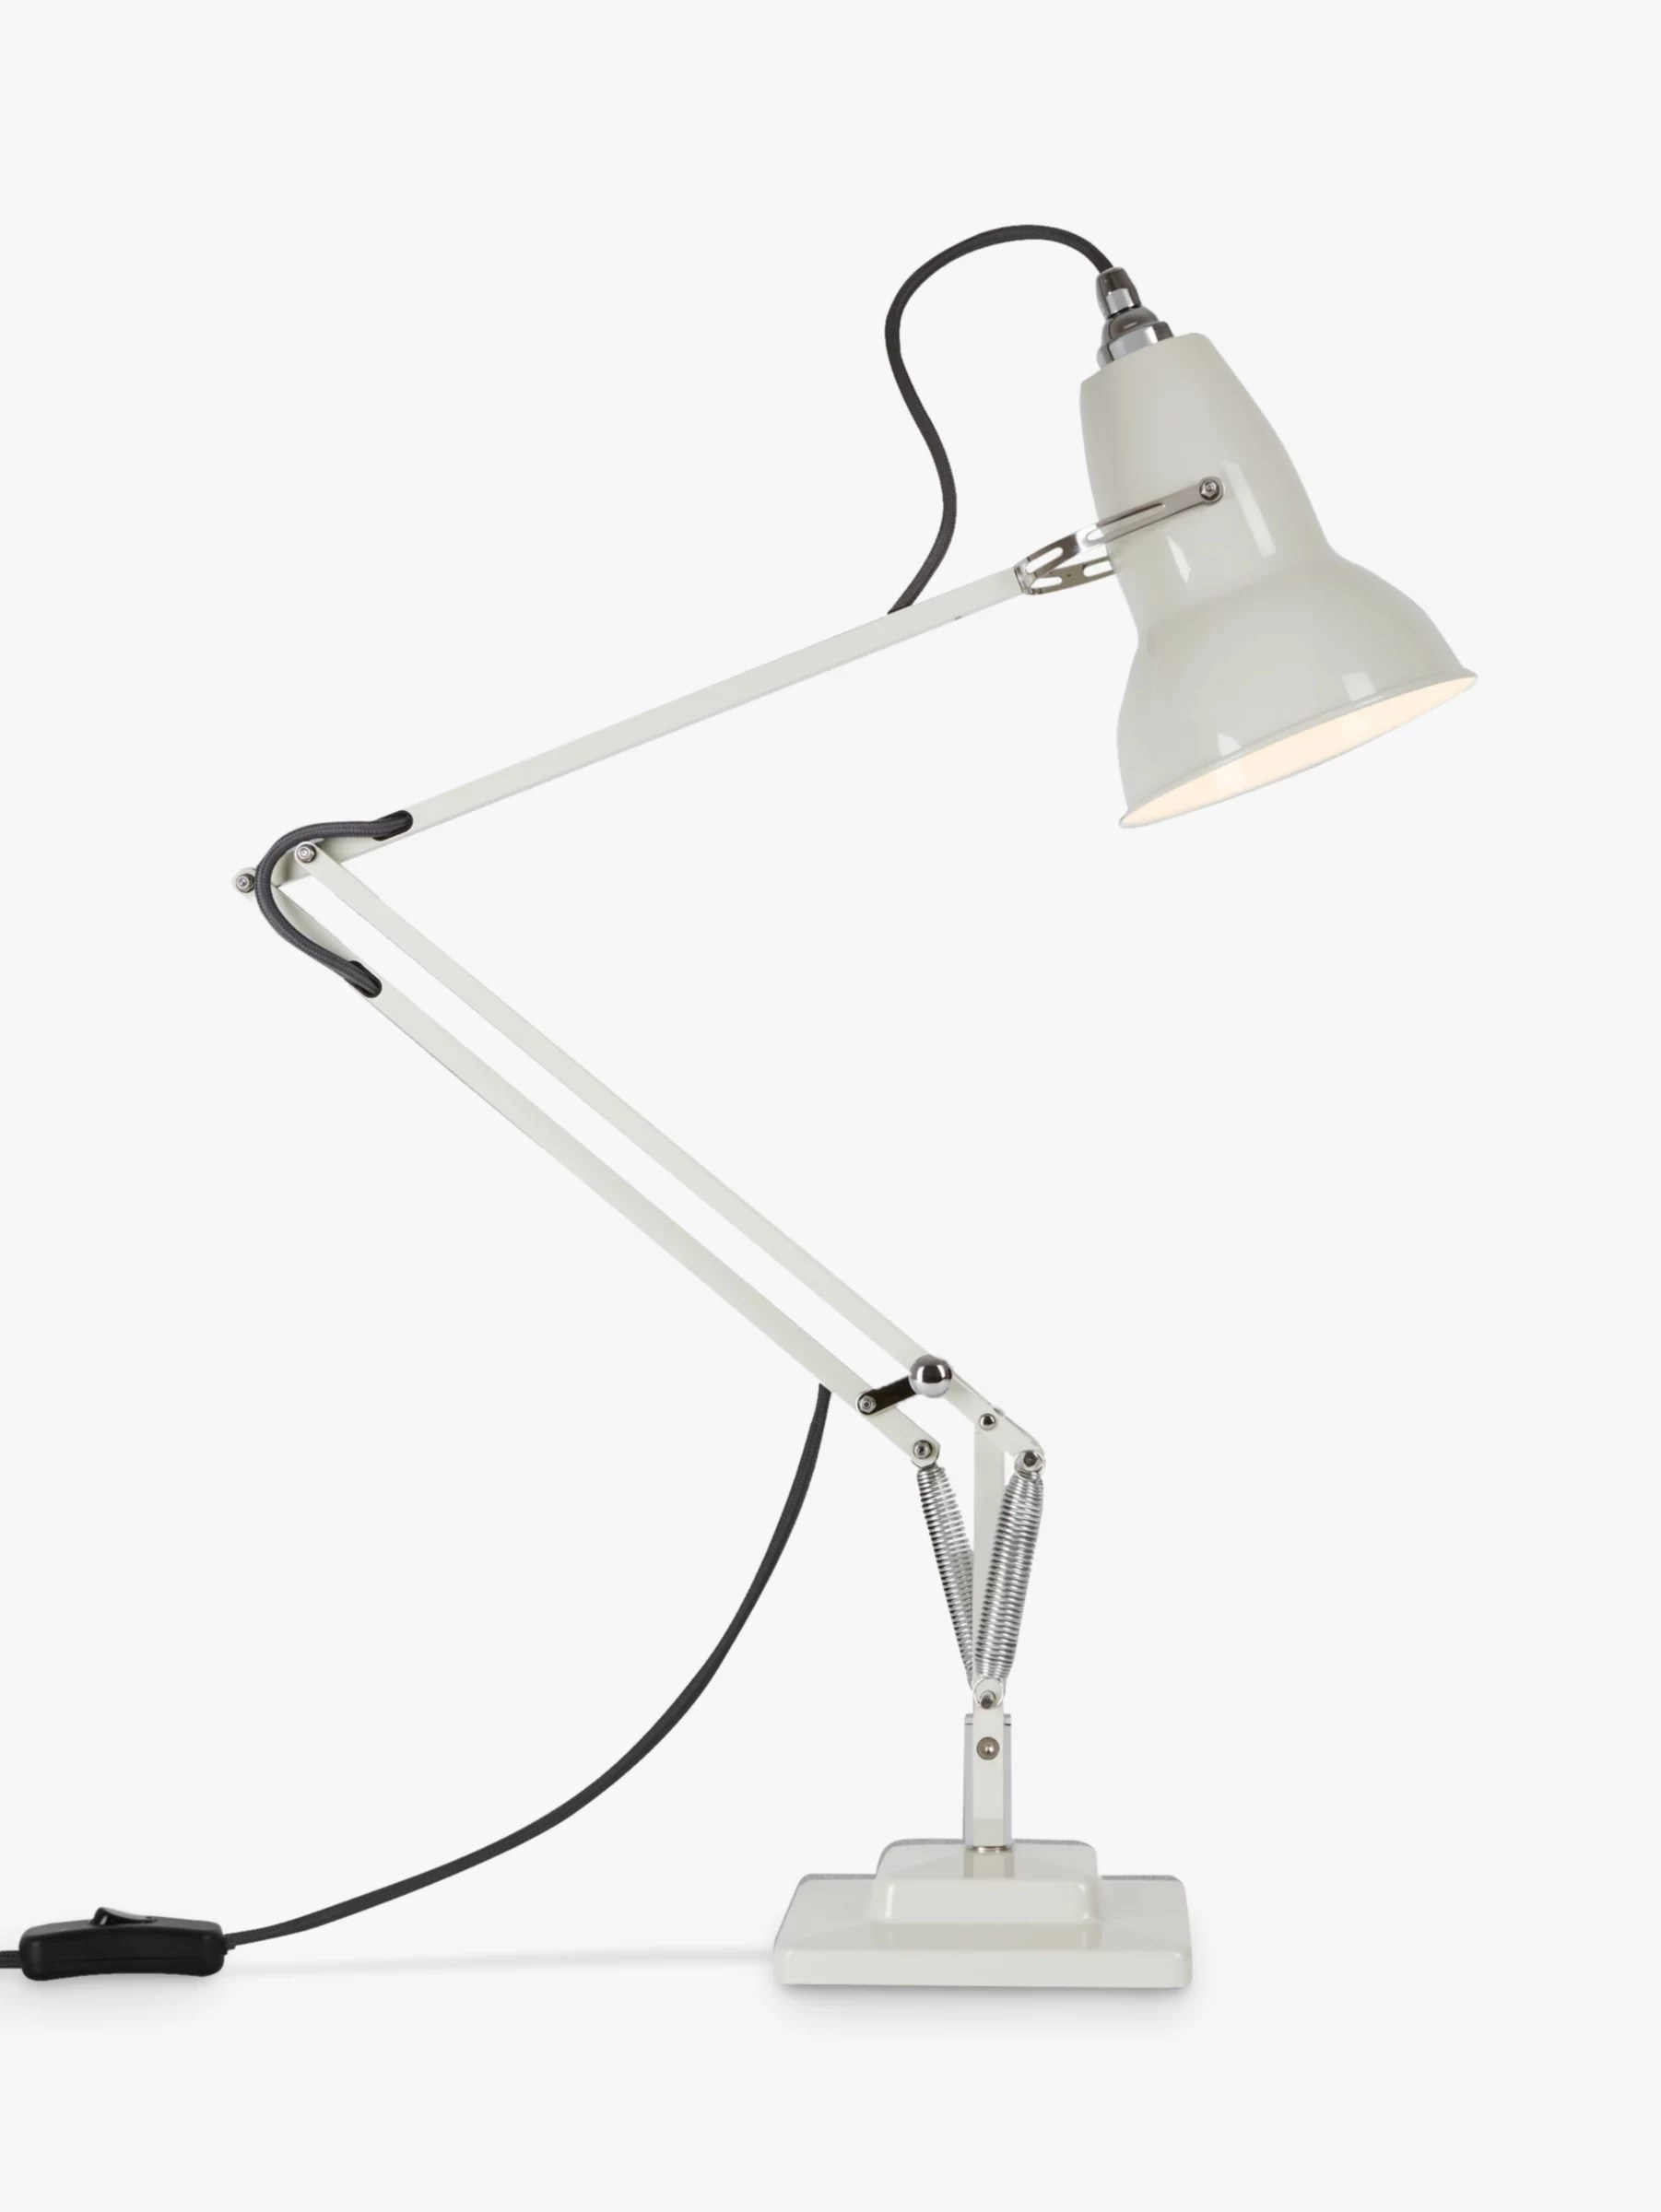 Anglepoise Lamp Anglepoise Original 1227 Desk Lamp At John Lewis